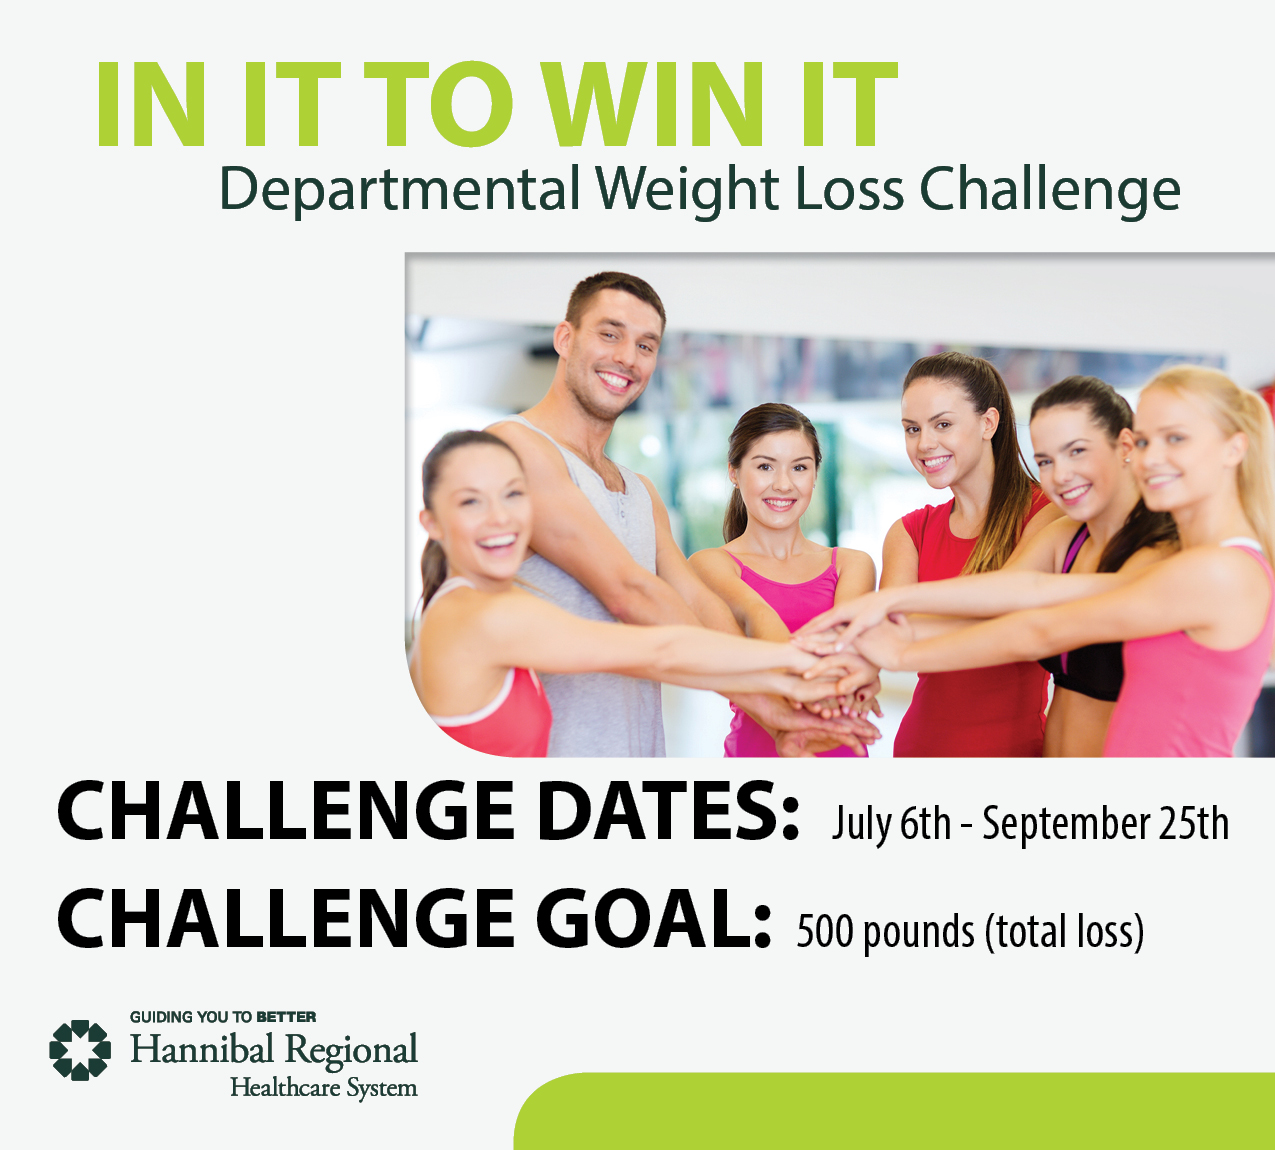 Weight loss training for a marathon